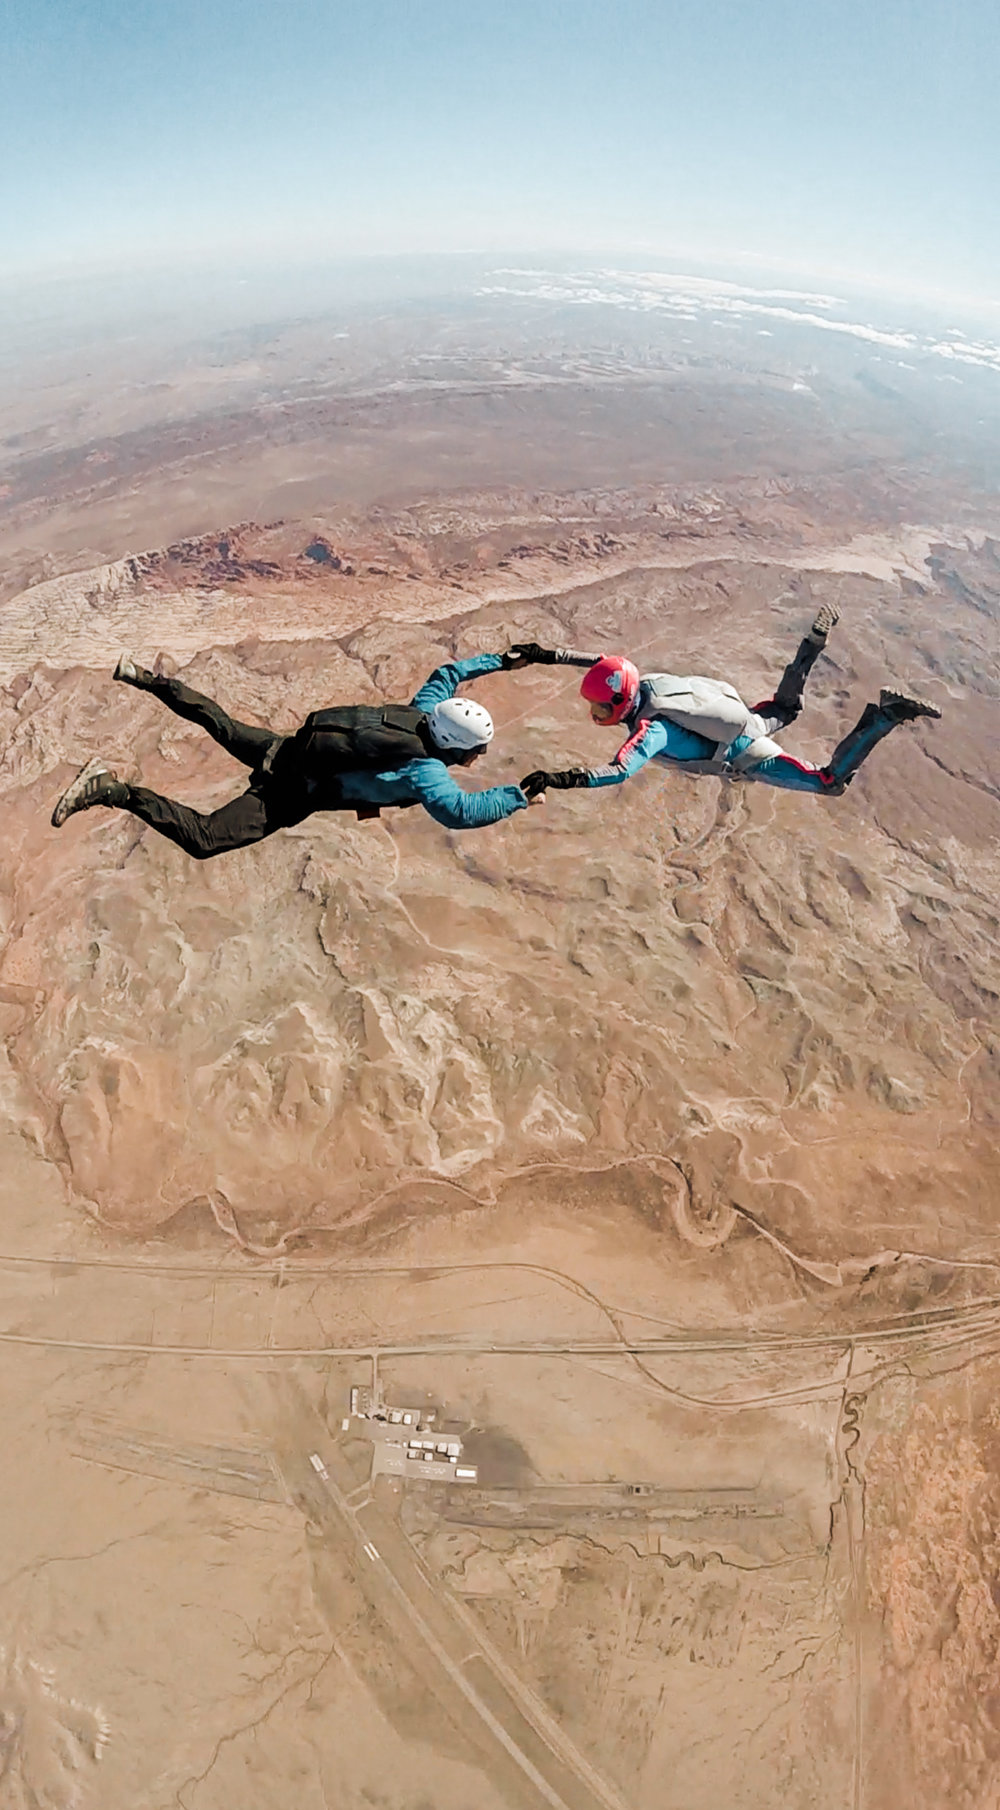 wedding photographers enjoying an off day skydiving over arches national park and canyonlands national park in moab